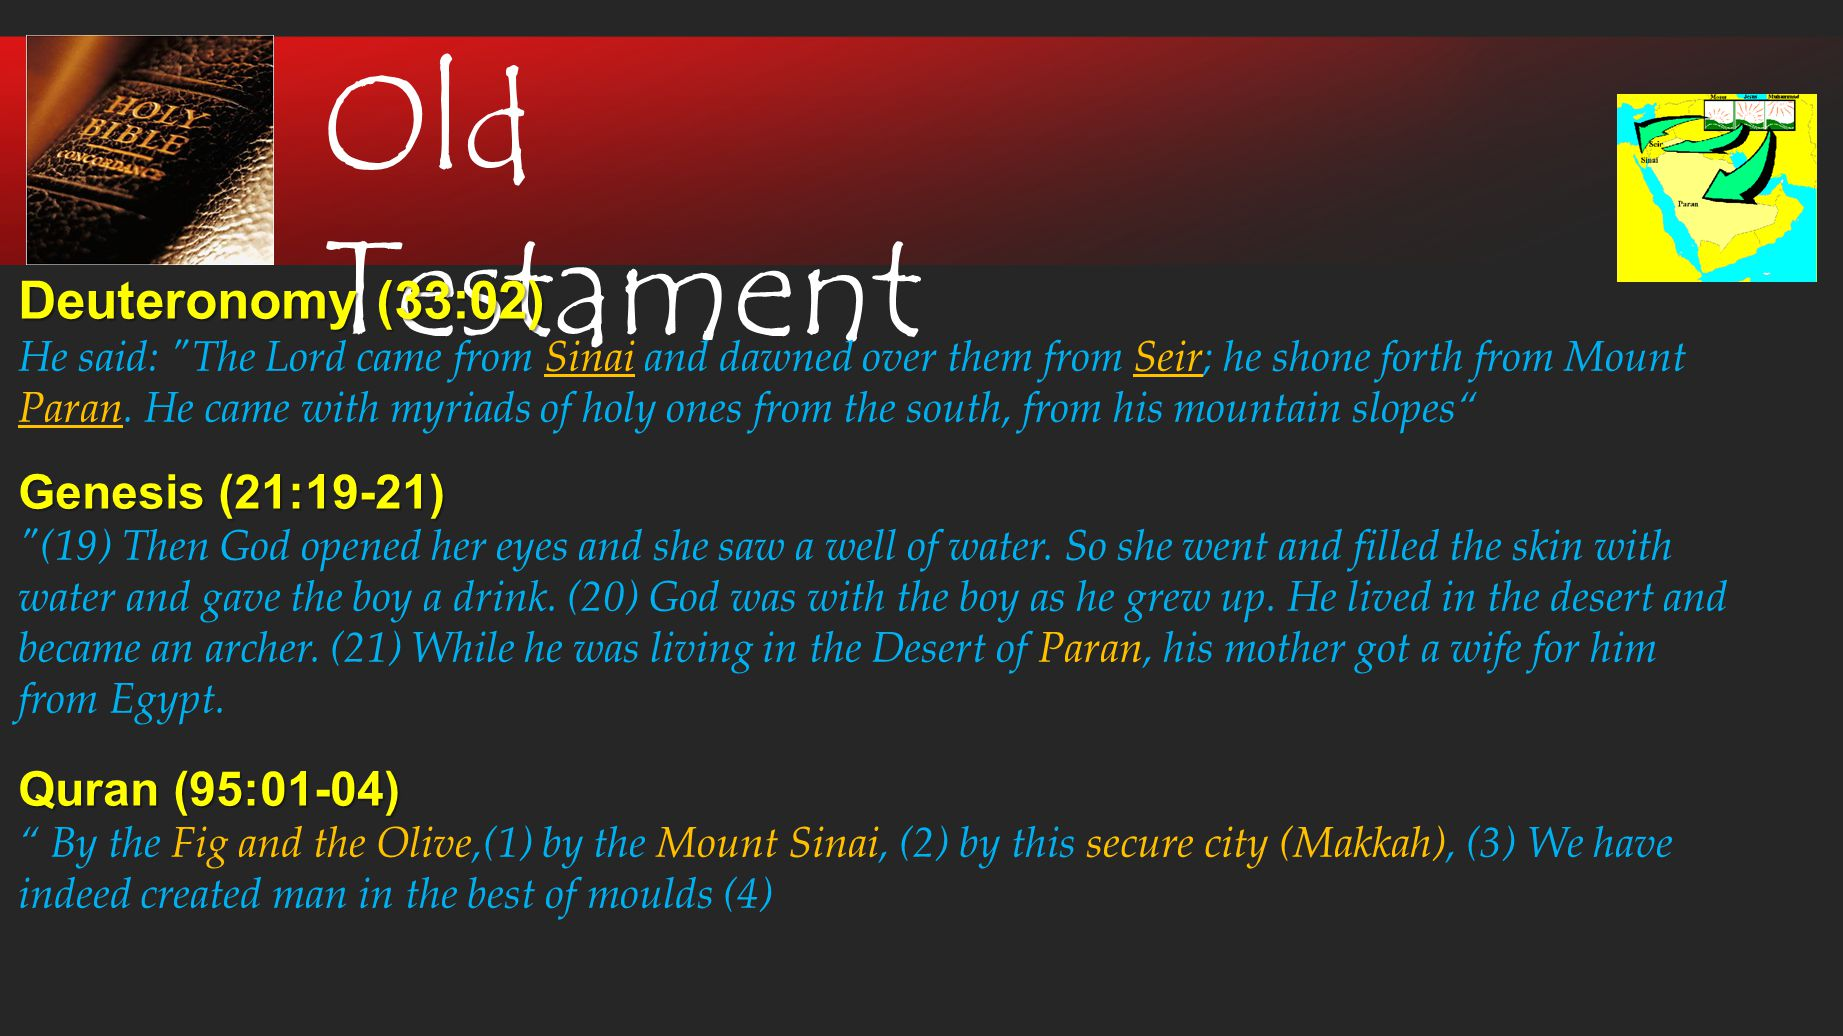 New Testament John (16:7-8) But I tell you the truth: It is for your good that I am going away.